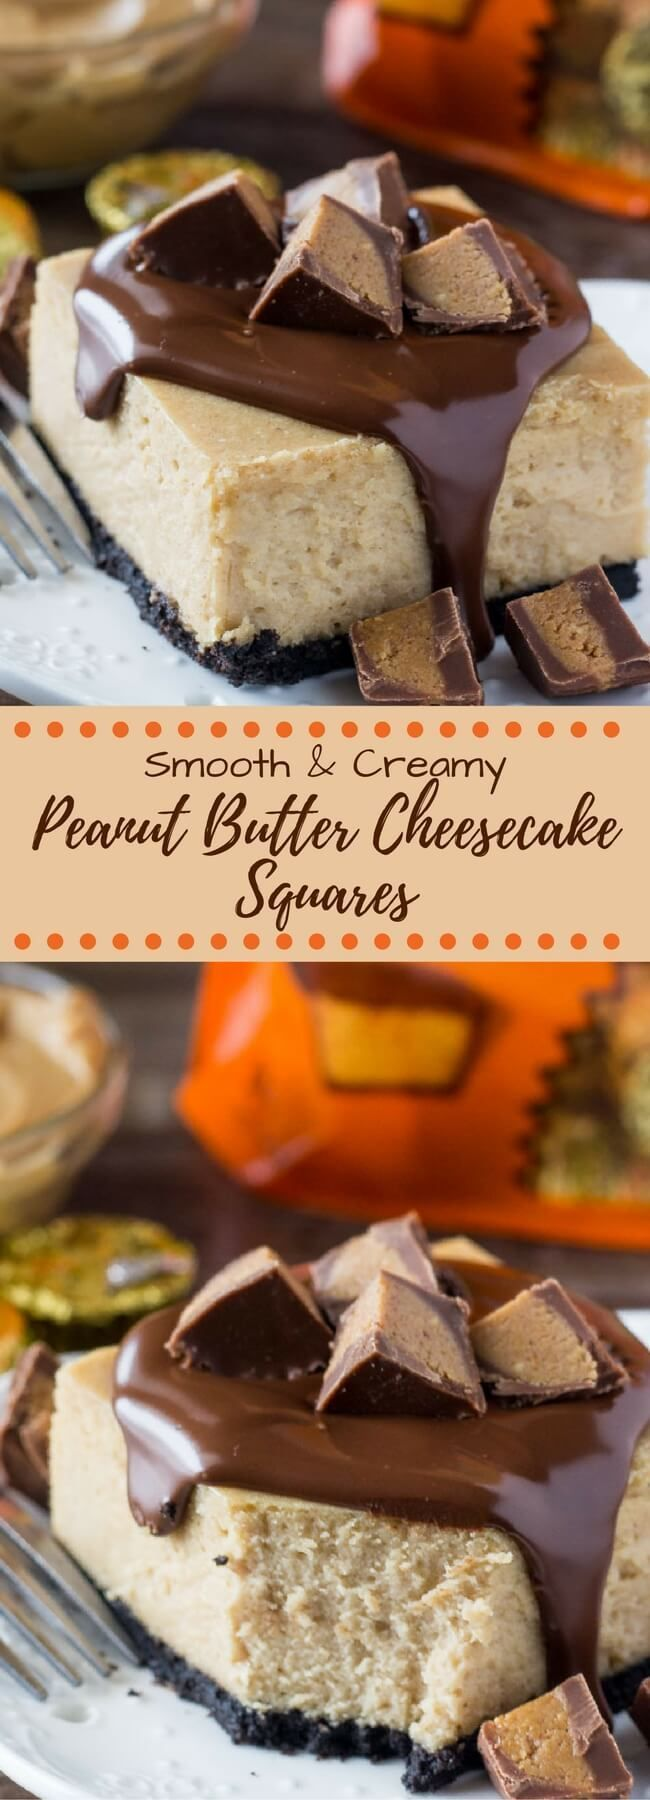 These Peanut Butter Cheesecake Squares have a crunchy Oreo crust & TONS of creamy peanut butter goodness for all the peanut butter lovers